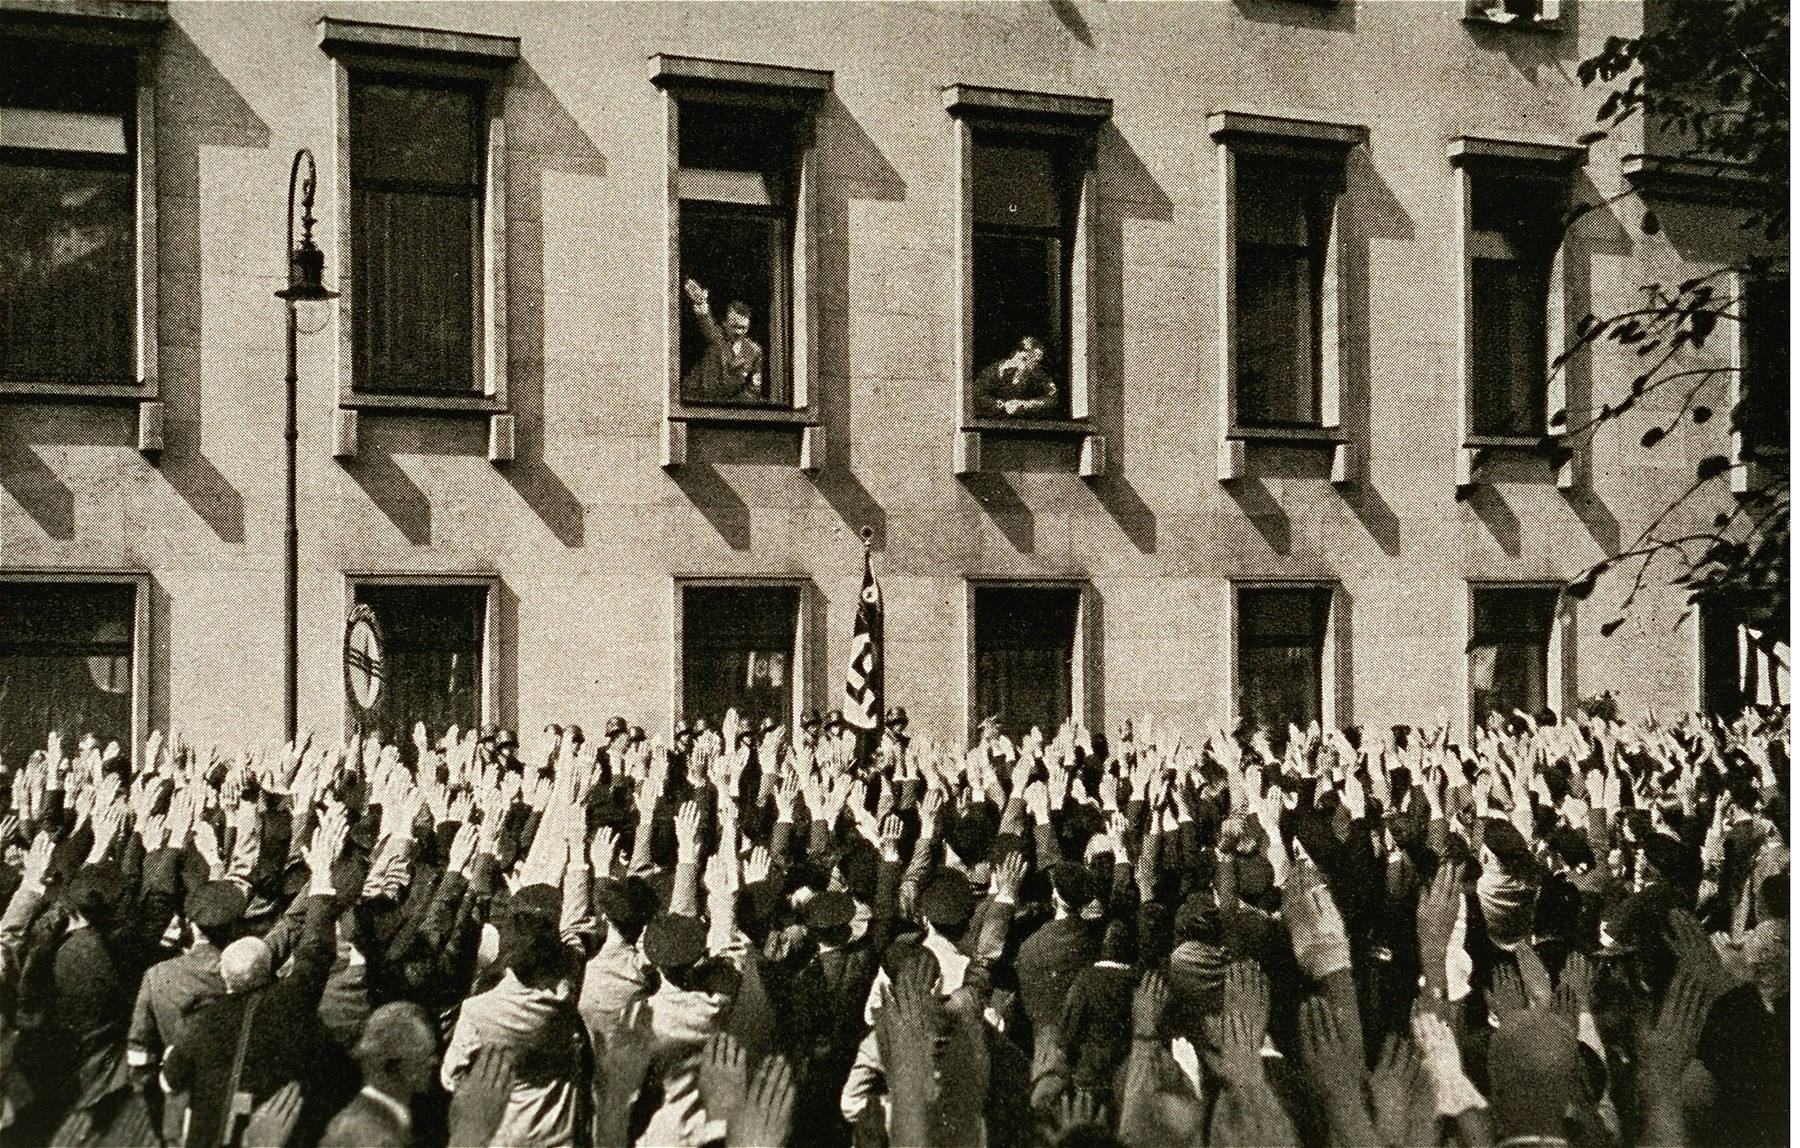 A delegation from the Saar region salutes Hitler from the street in front of the chancellery building.